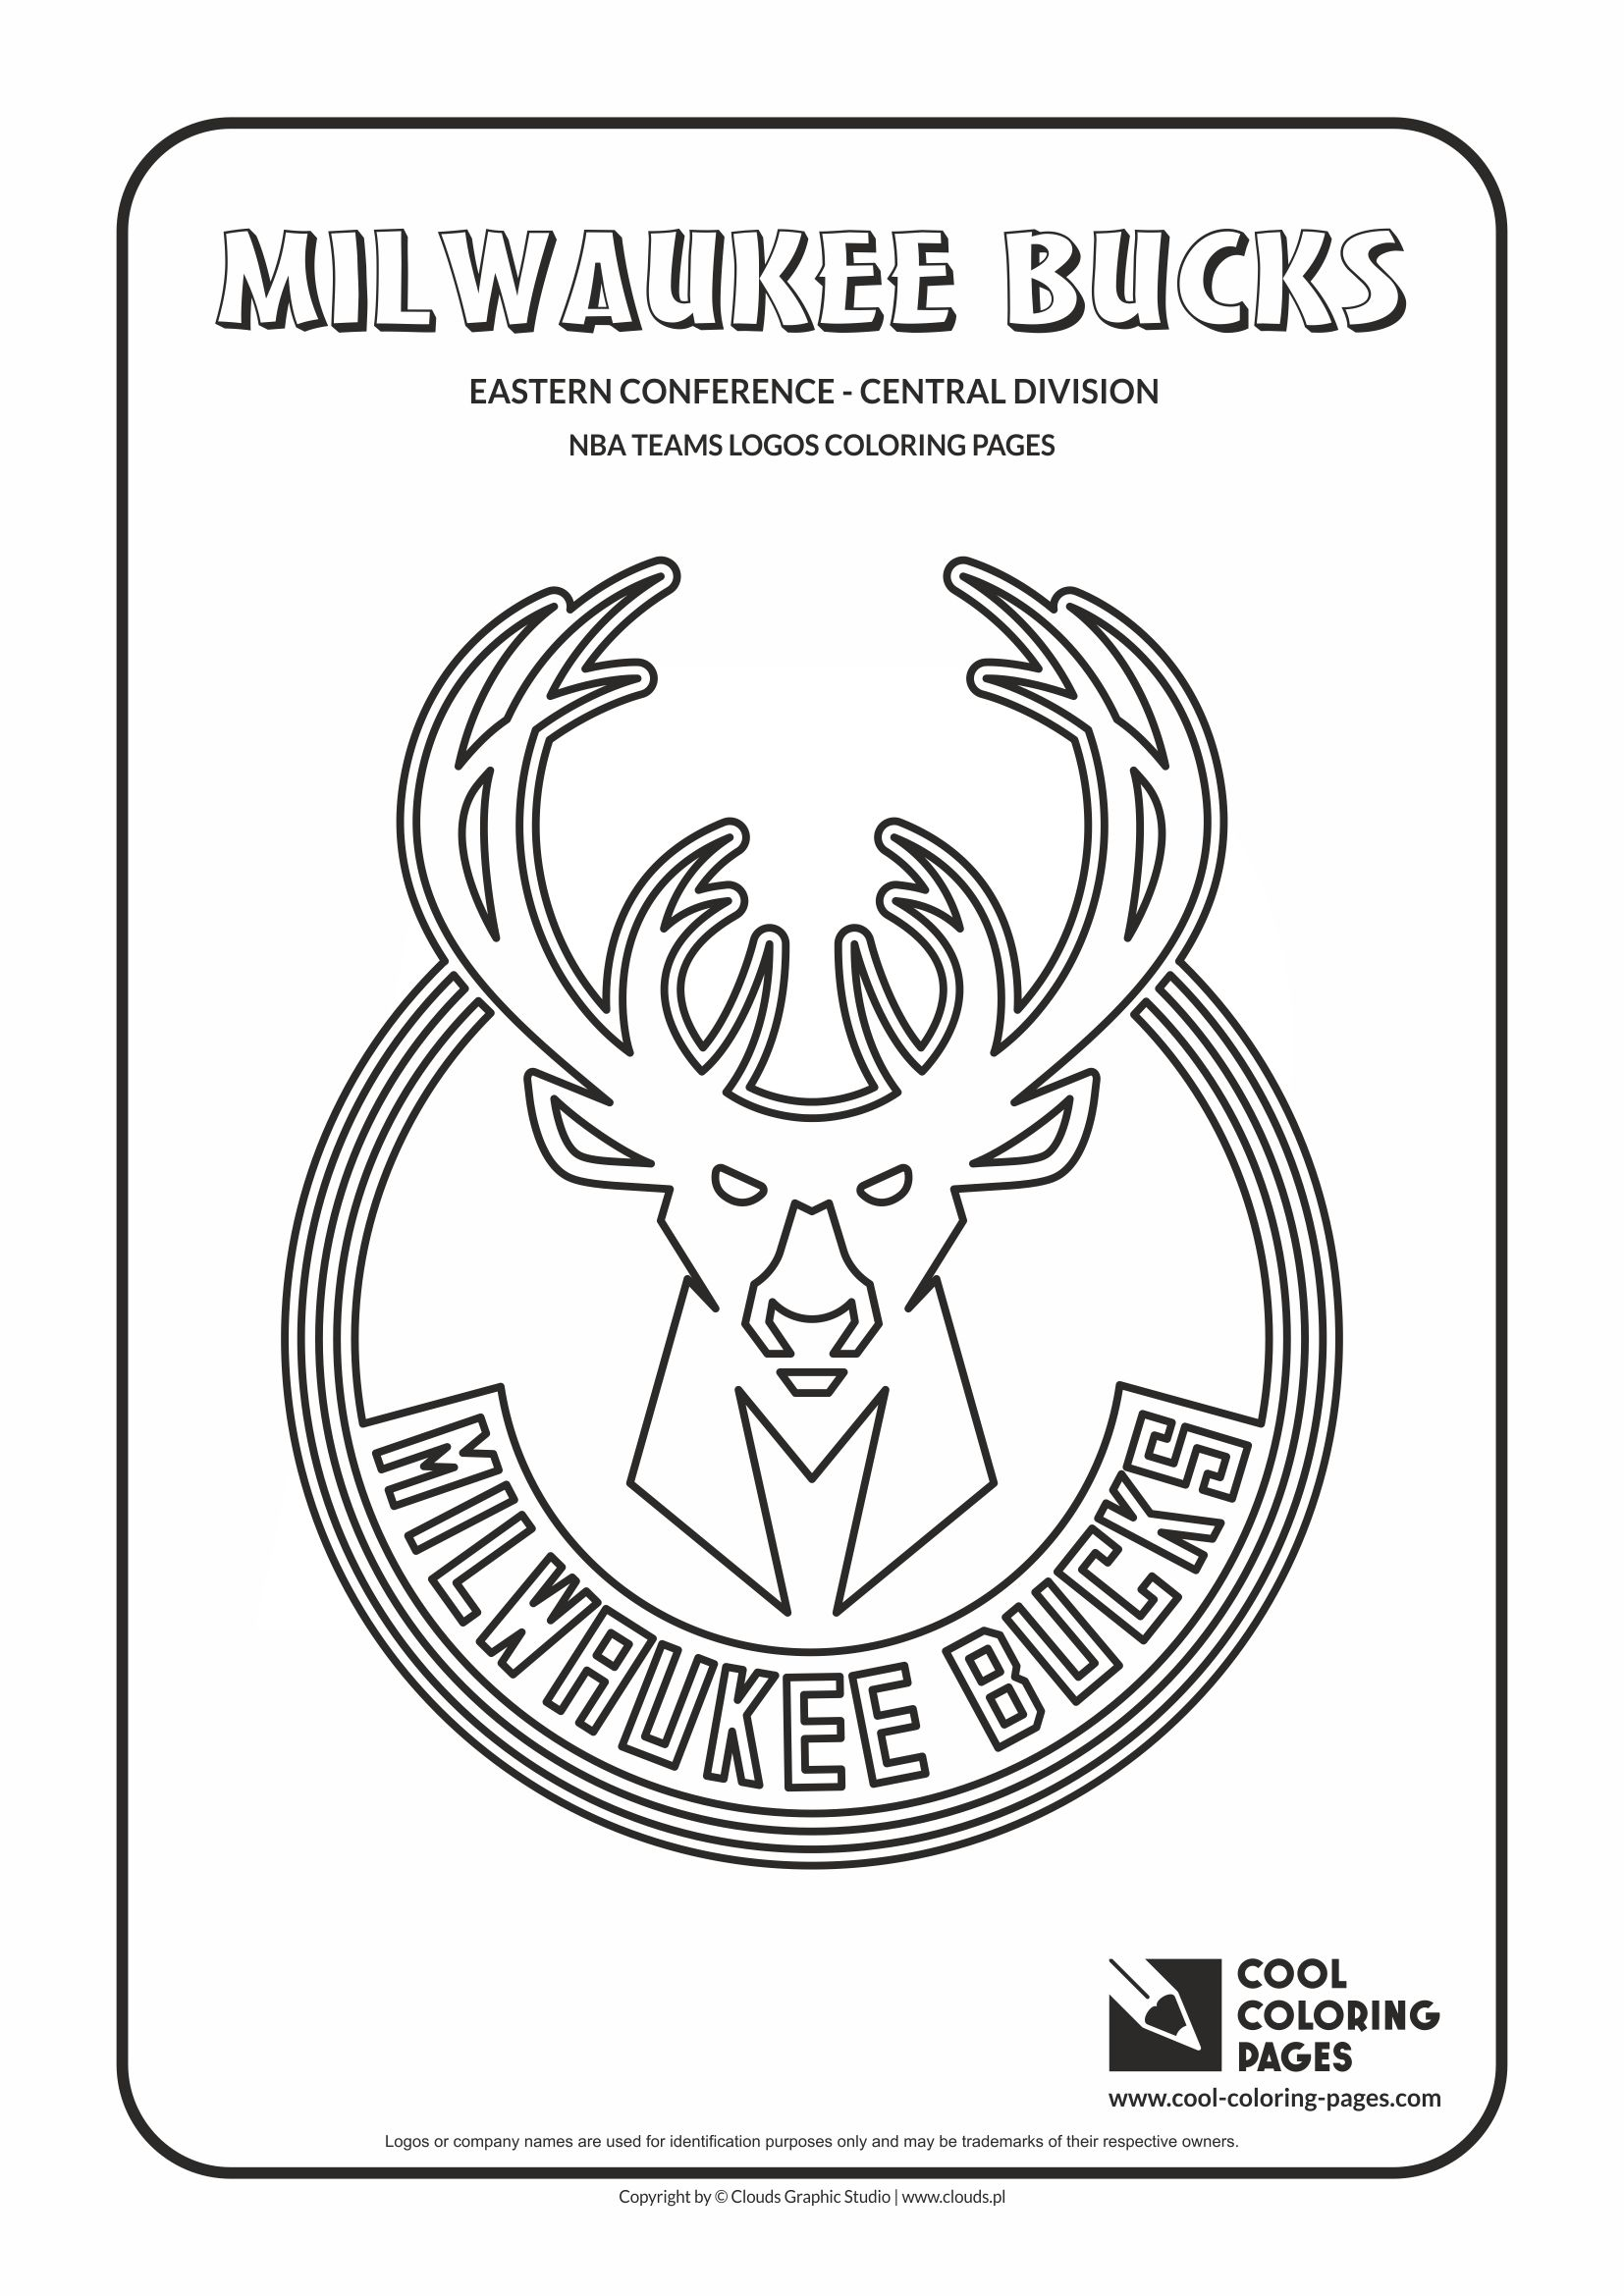 milwaukee bucks u2013 nba basketball teams logos coloring pages cool